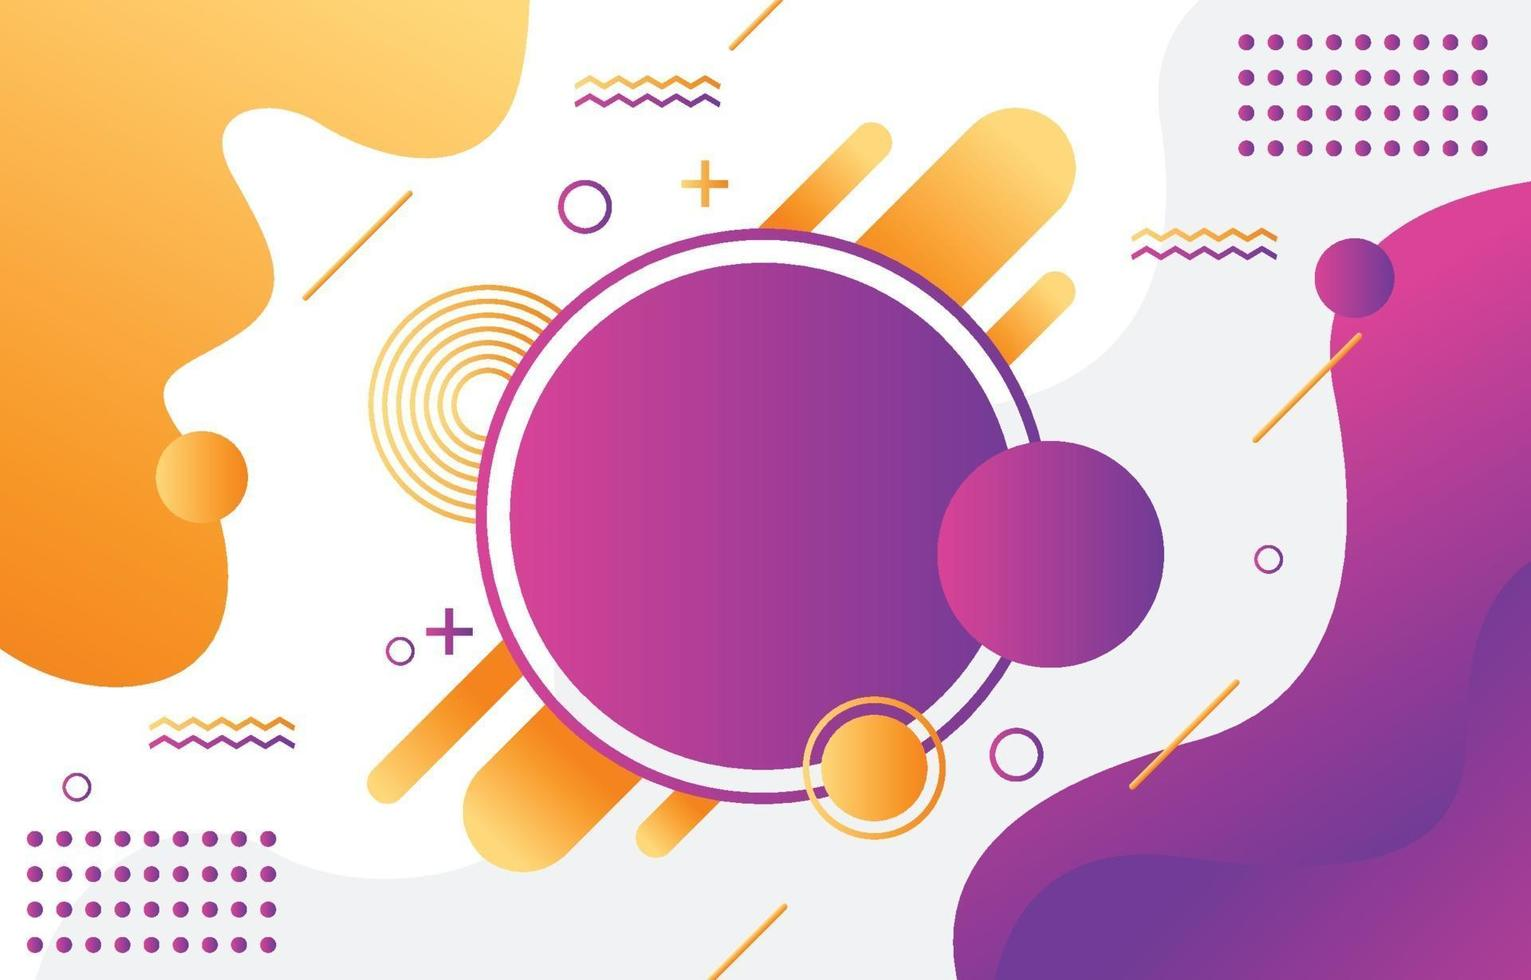 Abstract geometric shape colorful gradient background vector